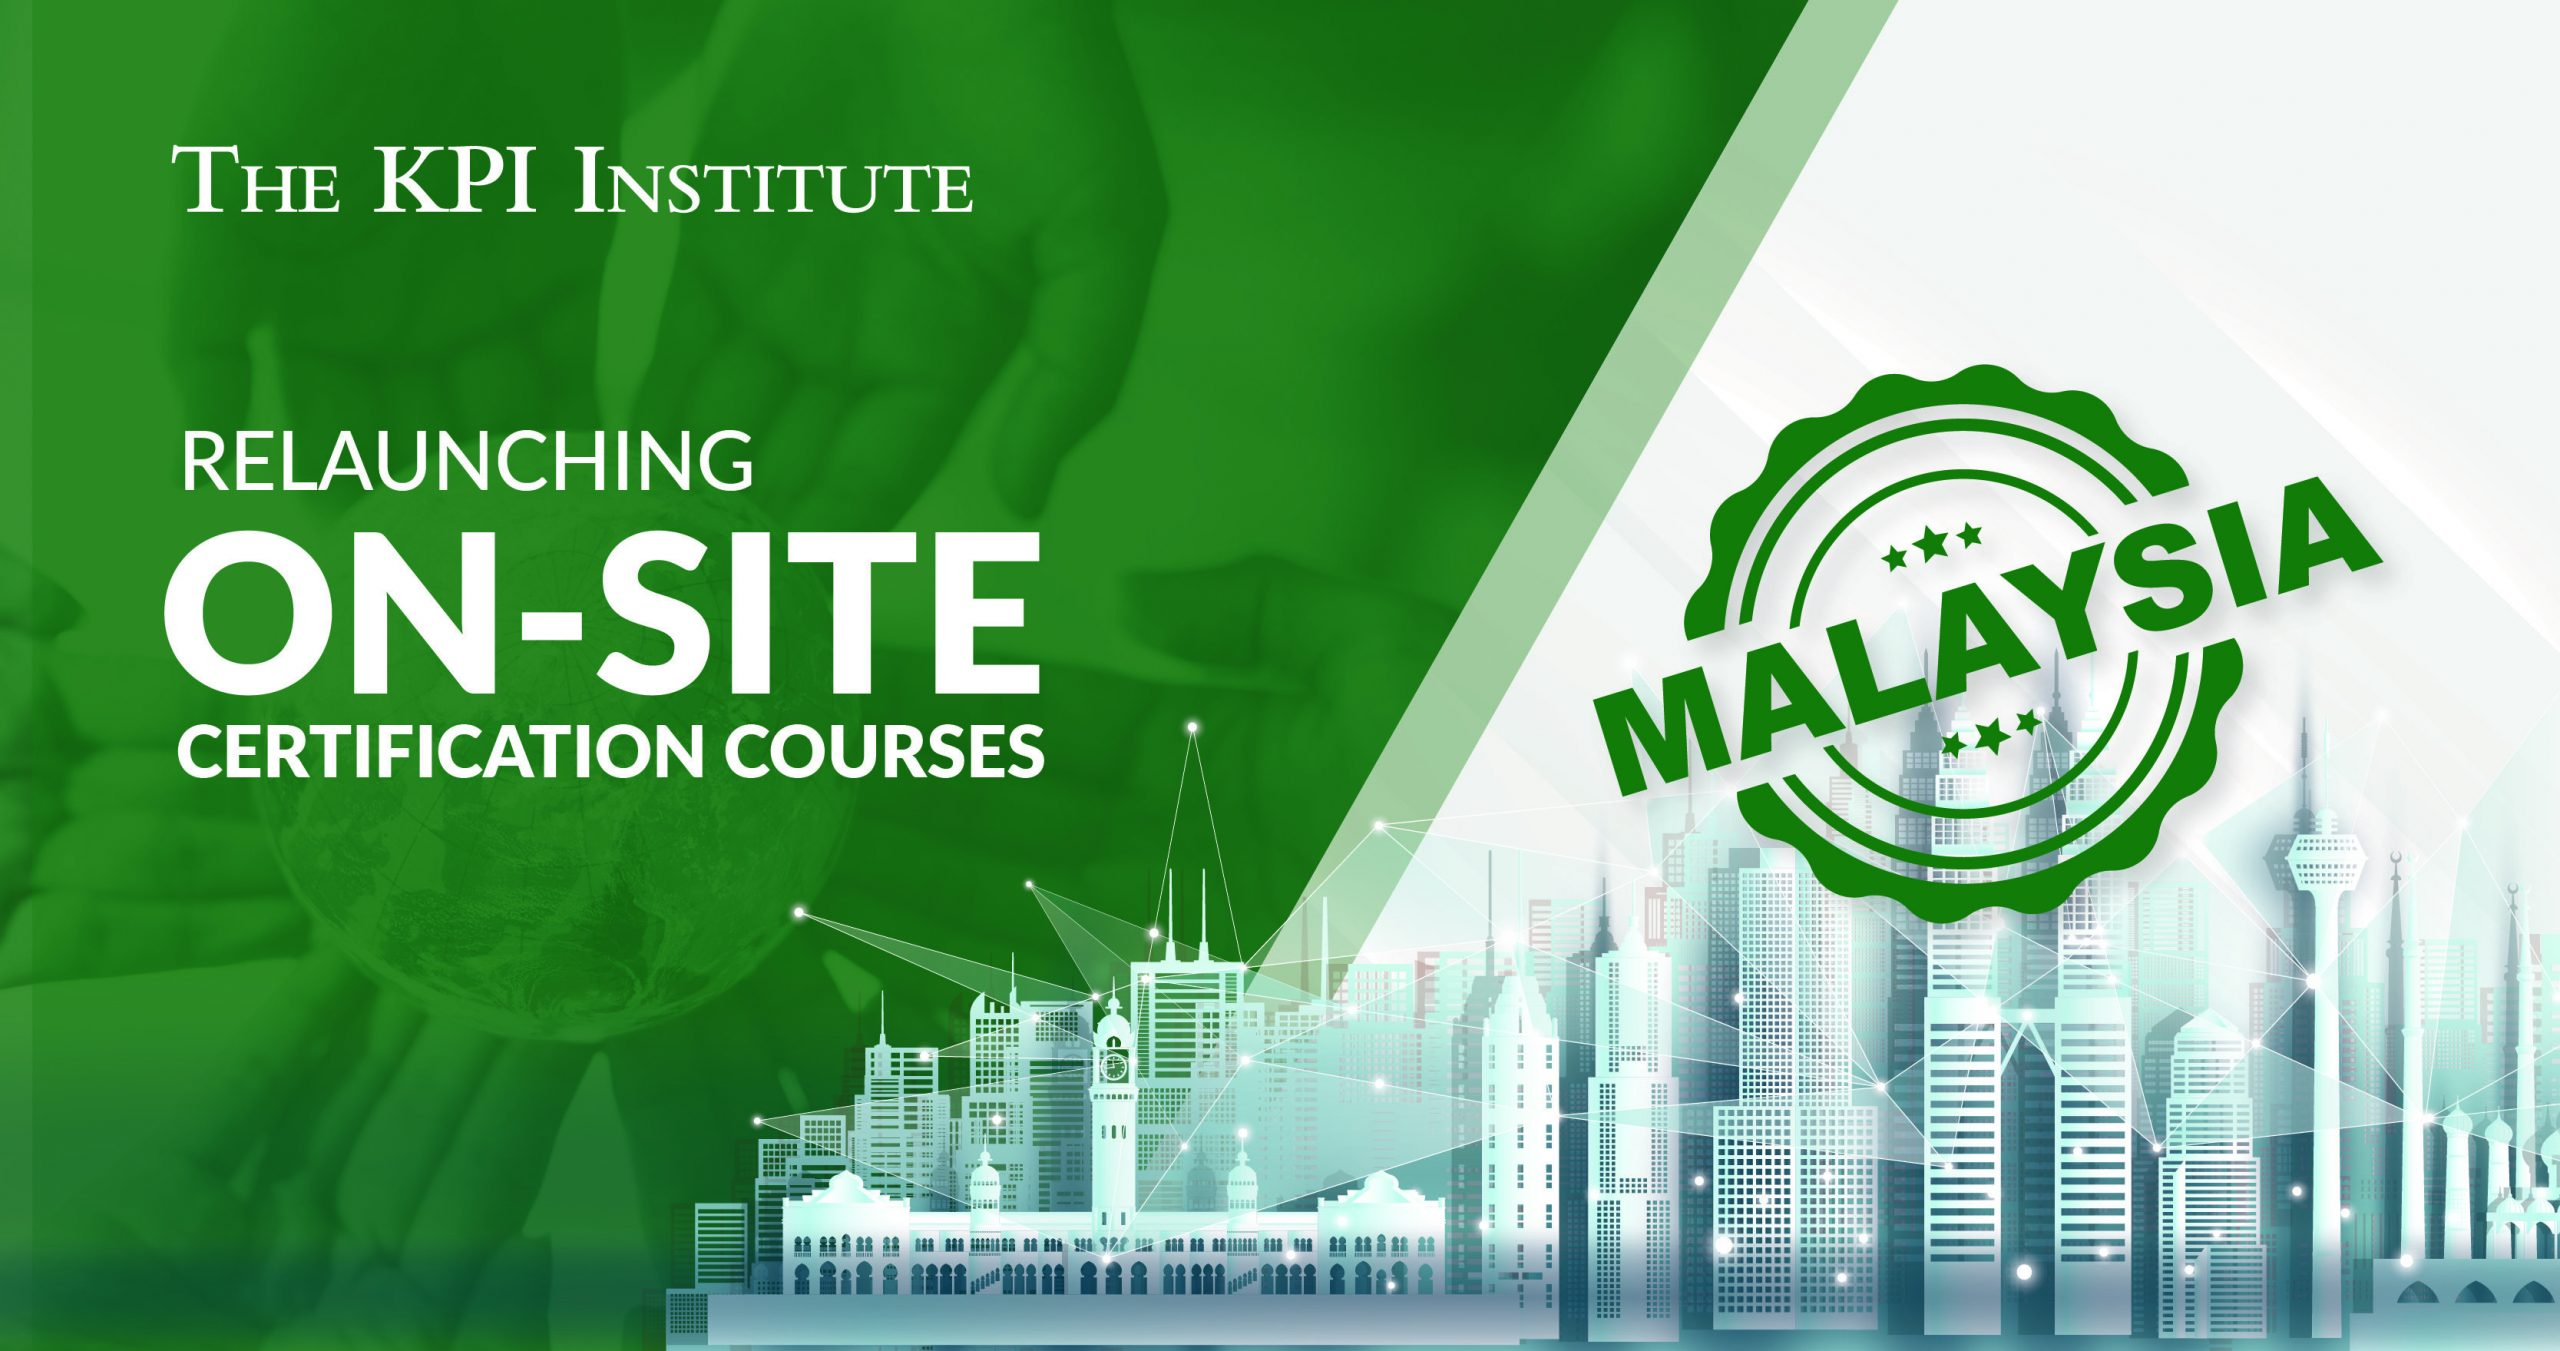 on-site courses